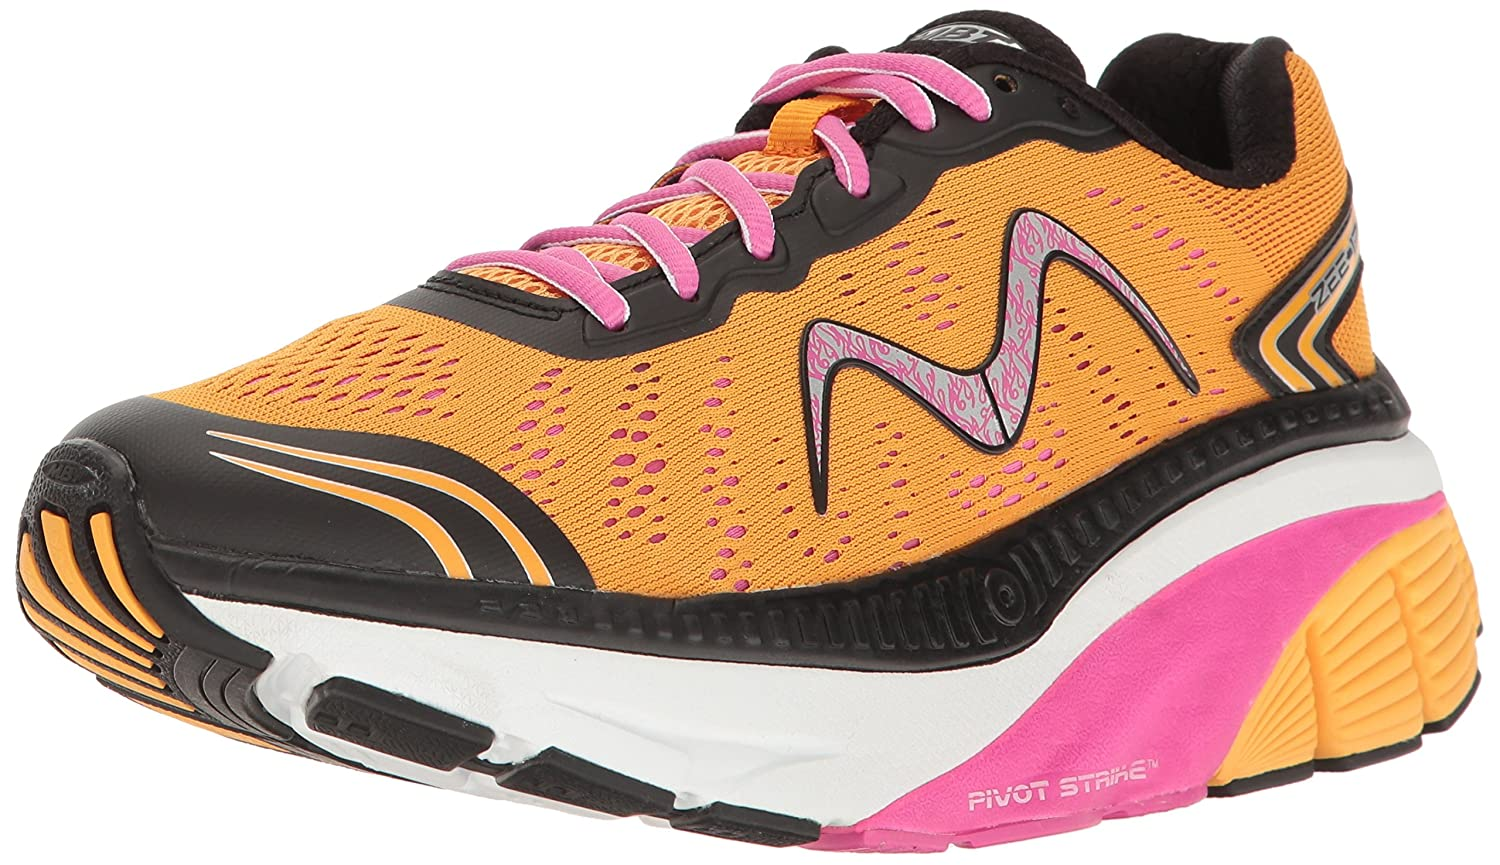 MBT Women's Zee 17 W Sneaker B01MR99R36 13 B(M) US|Orange/Pink/Black/White